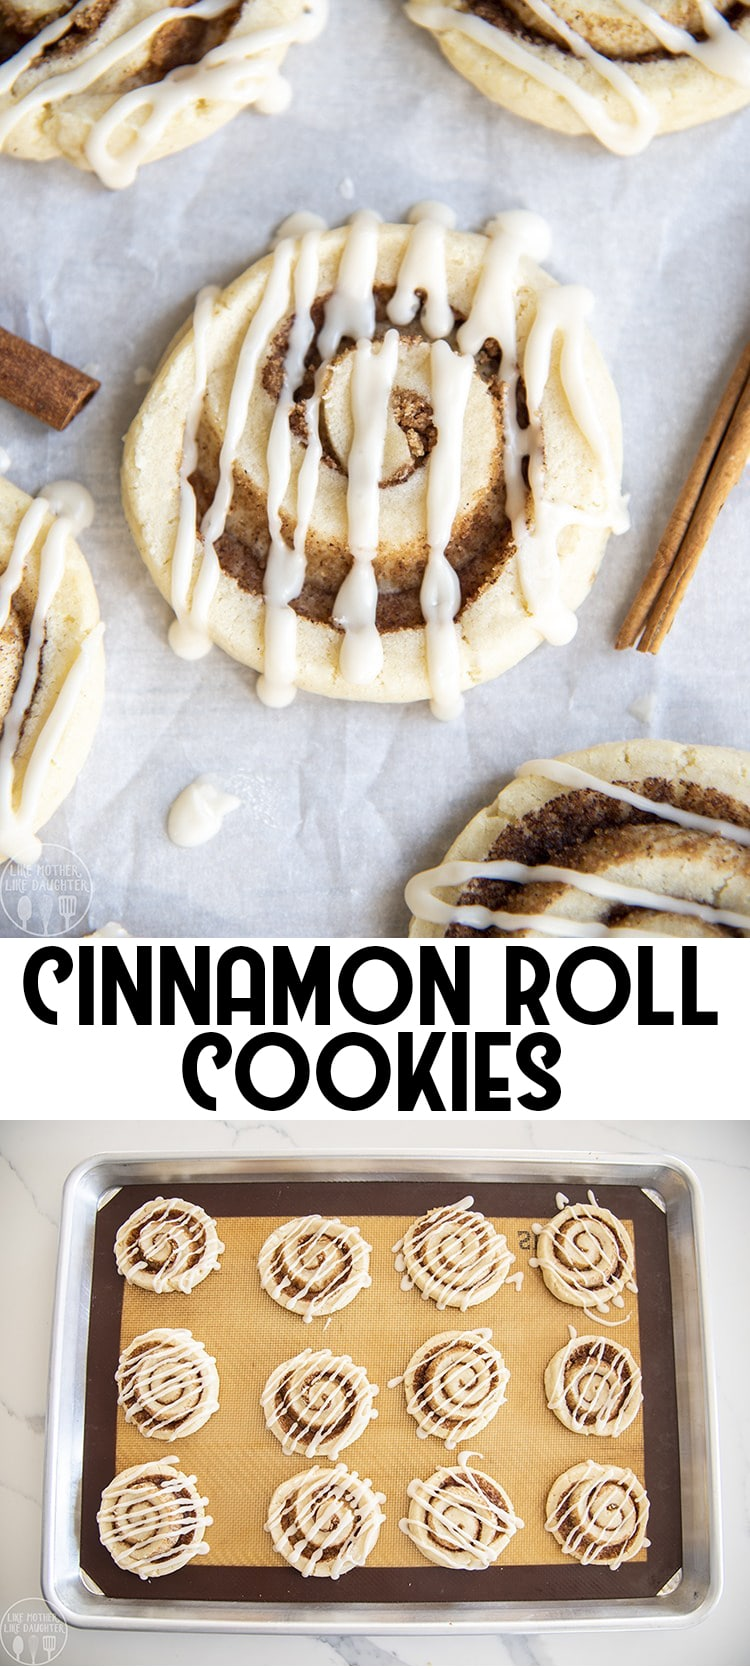 These cinnamon roll are delicious soft sugar cookies, rolled up with cinnamon sugar in the middle just like a cinnamon roll! Drizzled with a vanilla icing they're a perfect cookie!